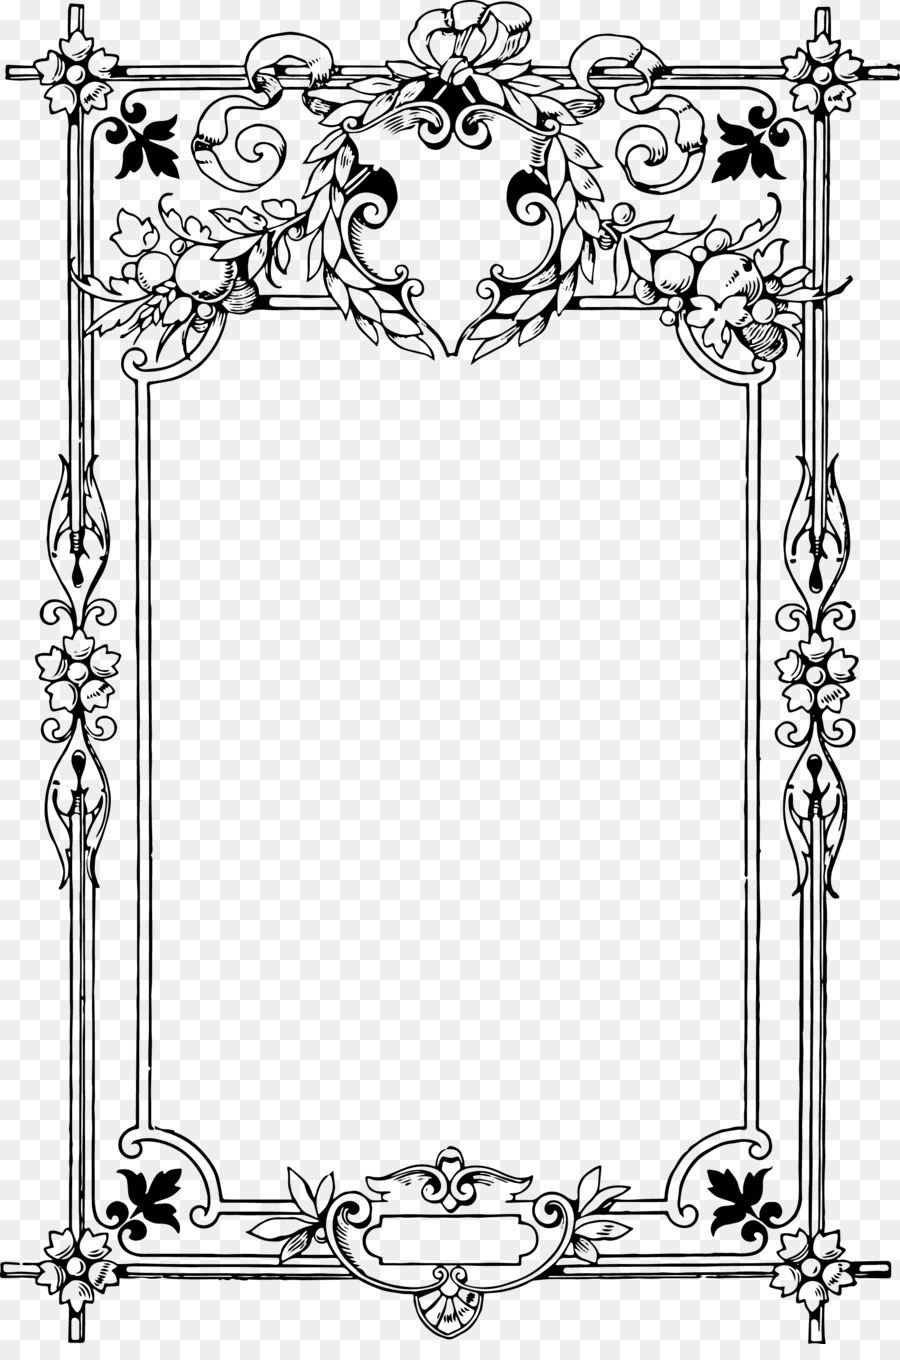 African american new babies borders and frames clipart clip freeuse library Black And White Frame png download - 1958*2924 - Free Transparent ... clip freeuse library